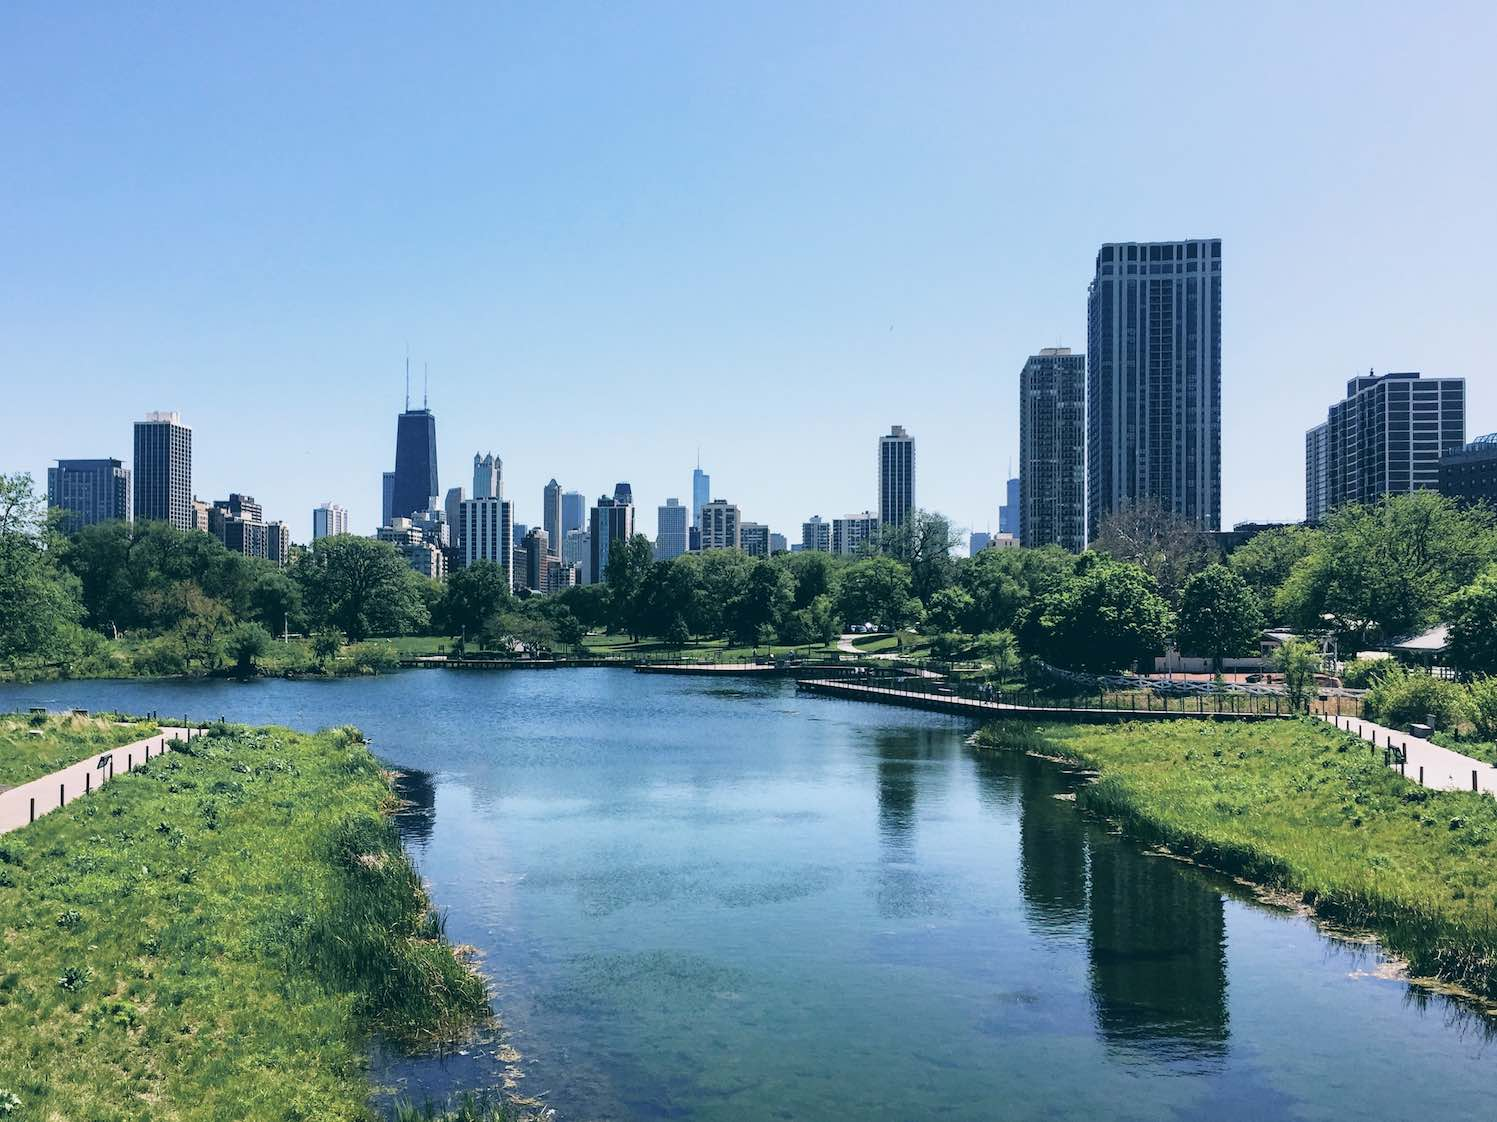 The Weekly Getaway: Chicago, Chicago, That Toddlin' Town